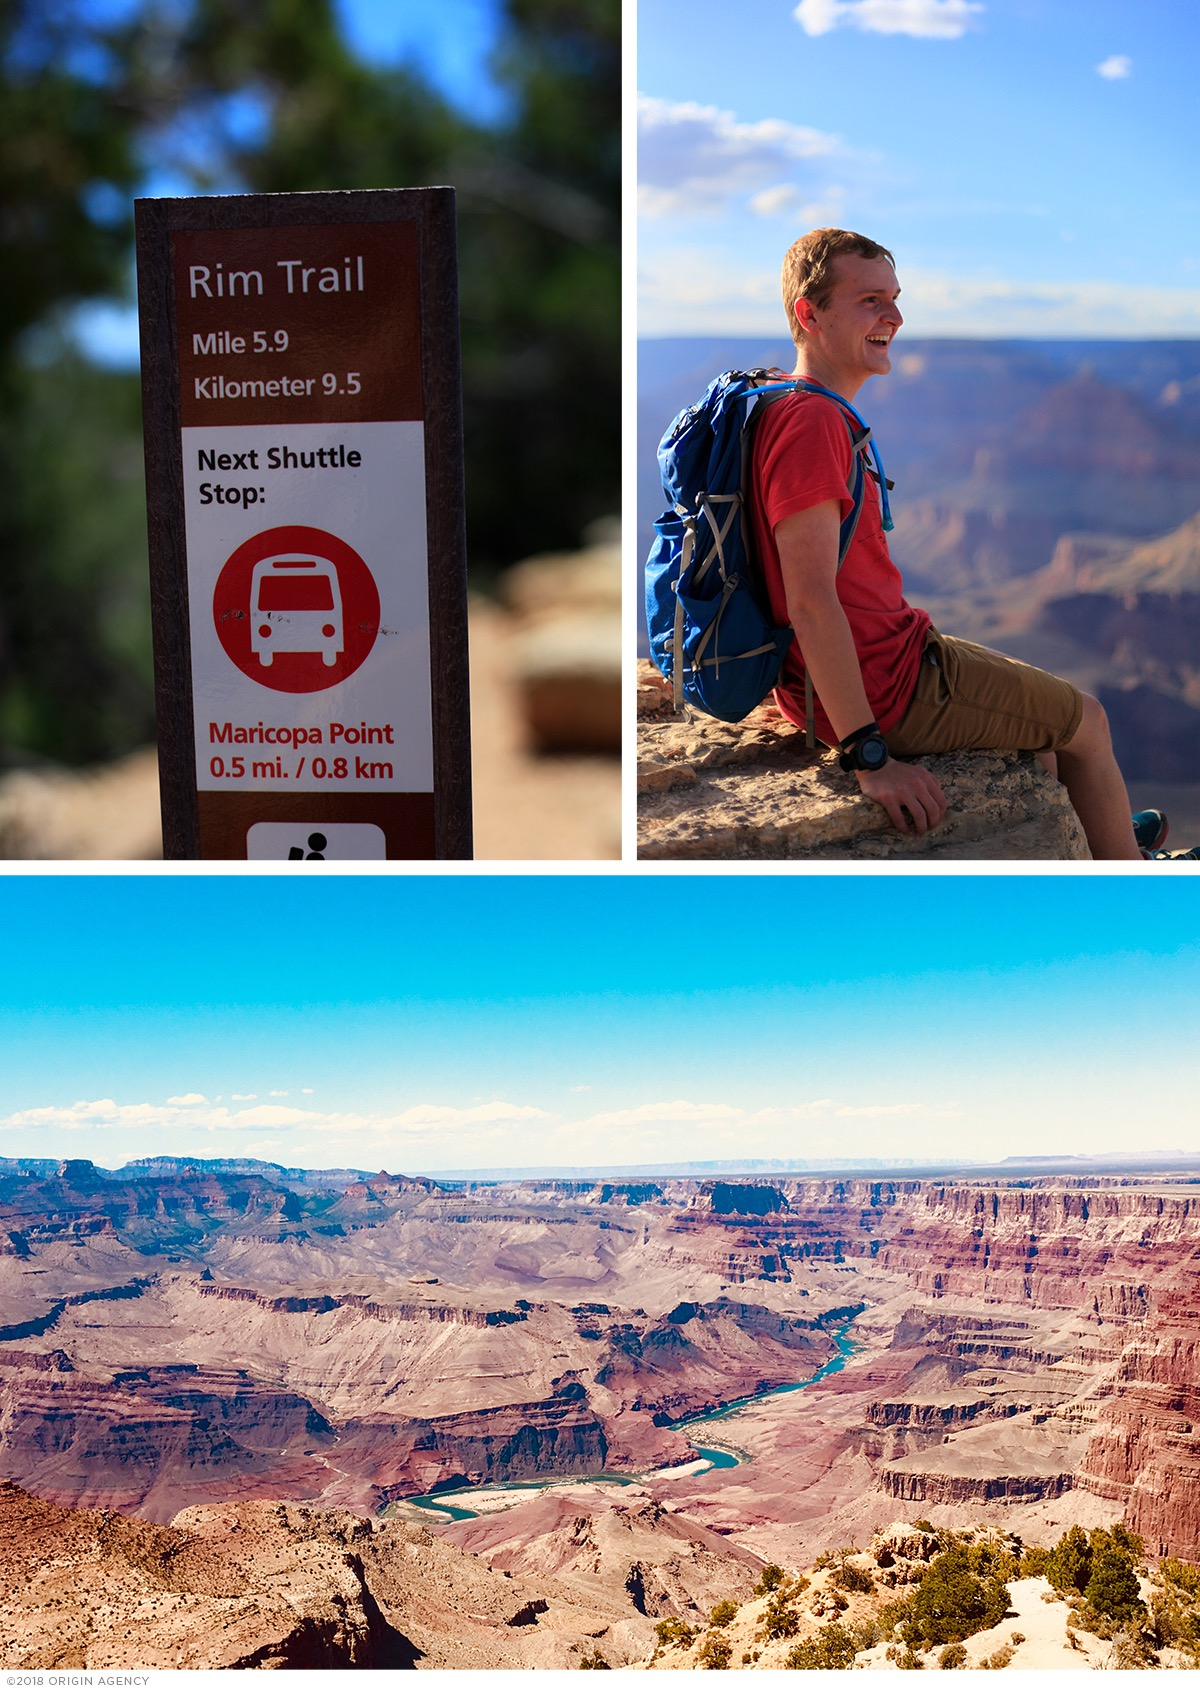 origin-agency-grand-canyon-rim-trail.jpg